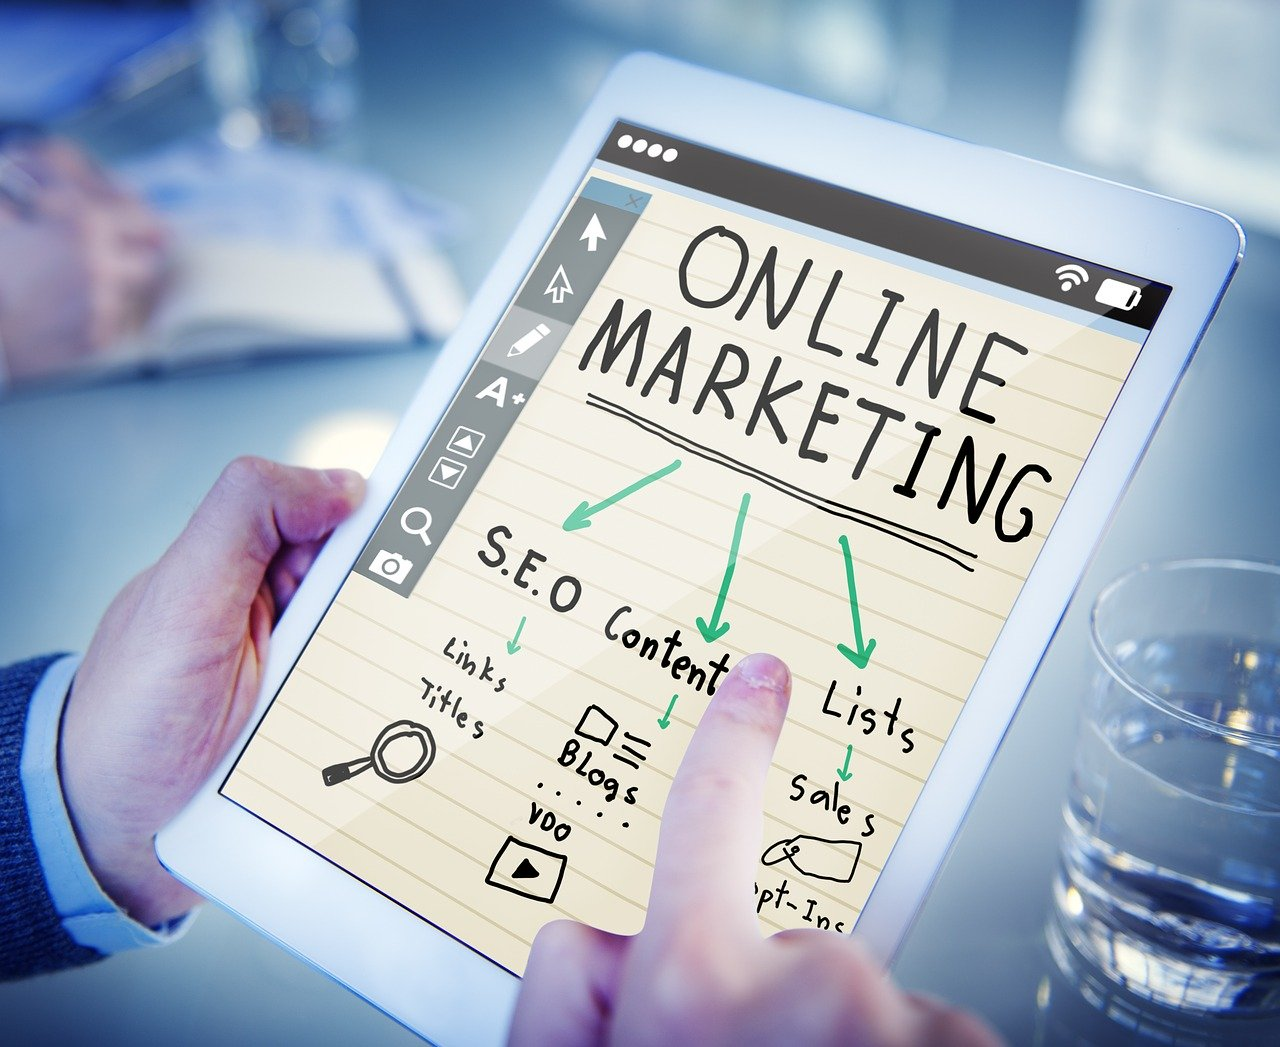 Online marketing graphic.